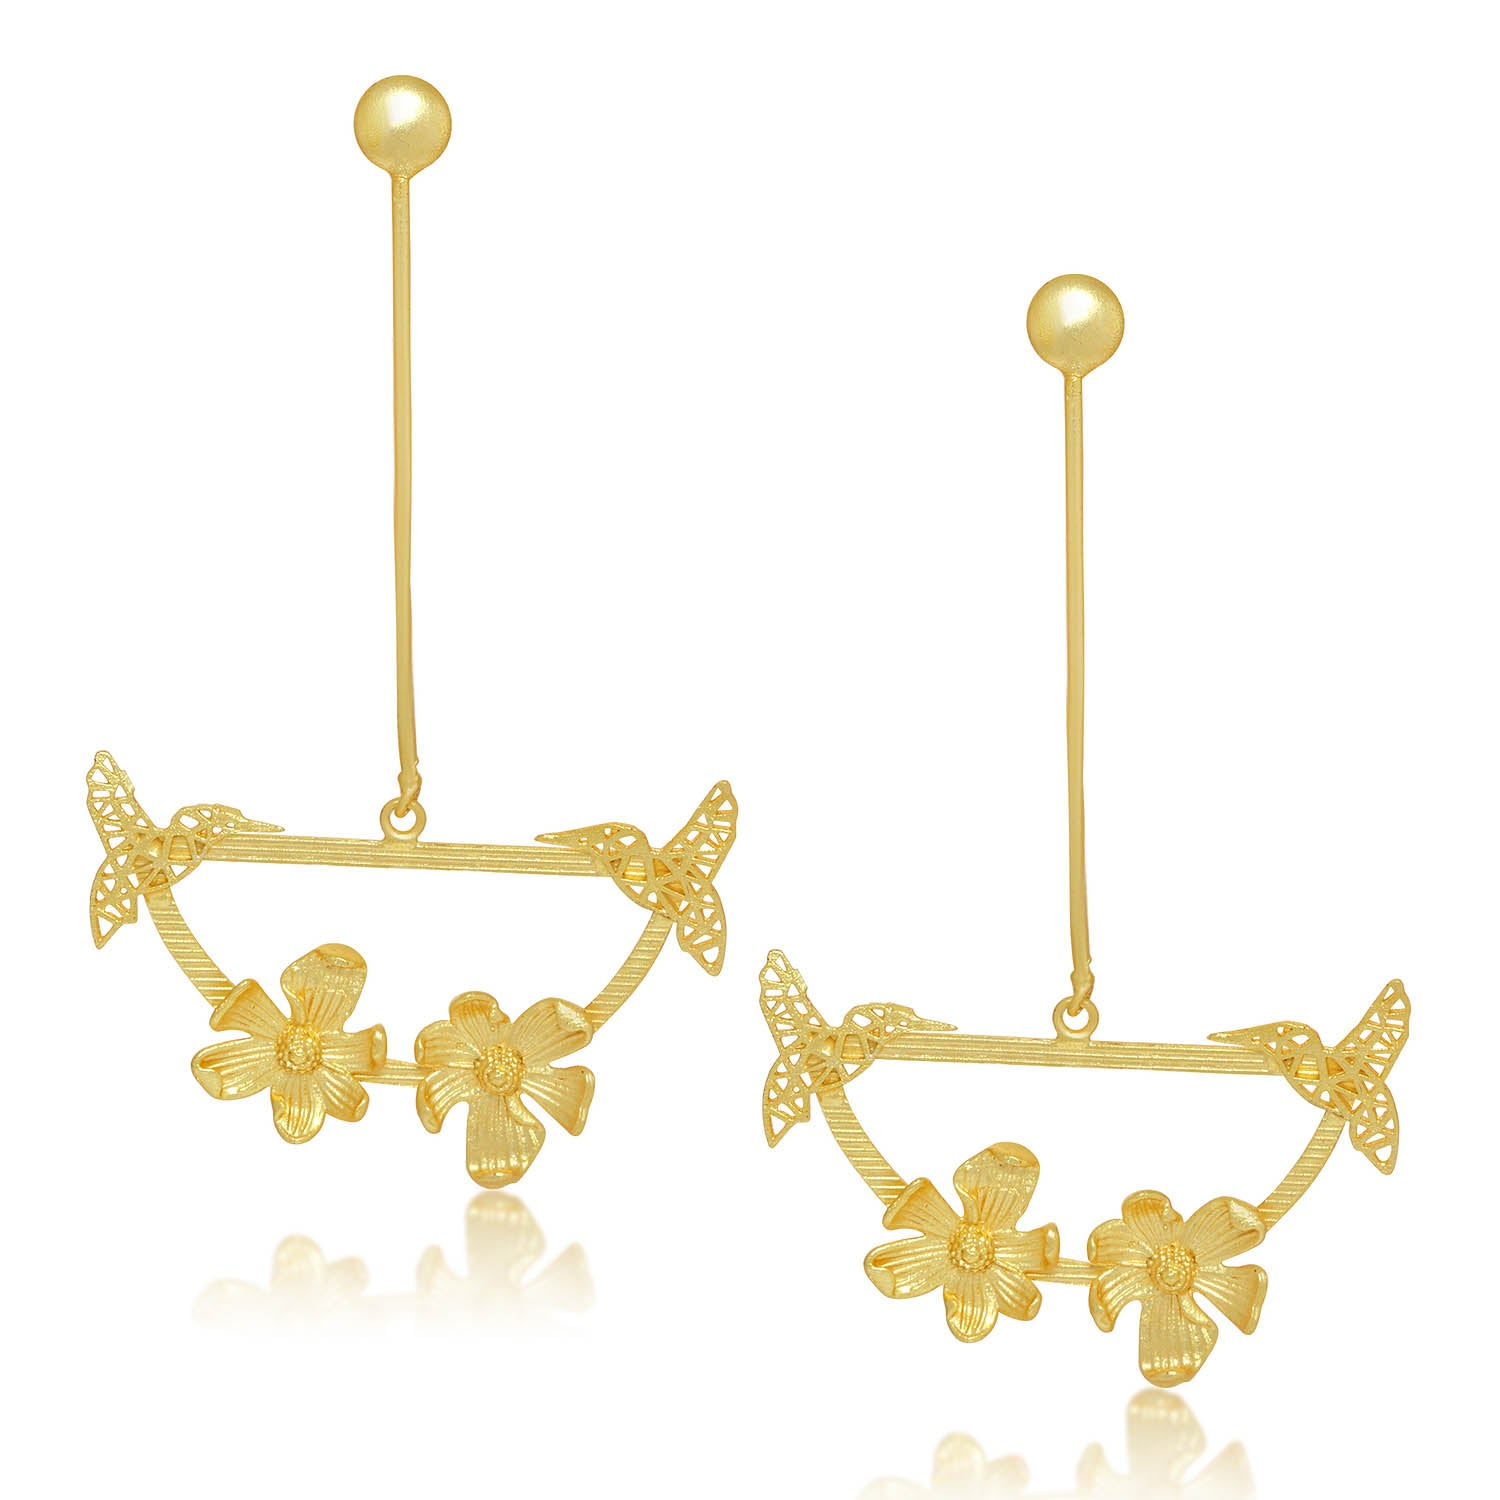 Sukkhi Classy Gold Plated Bird and Floral Chandelier Earring For Women-SUKKHI1-Earring